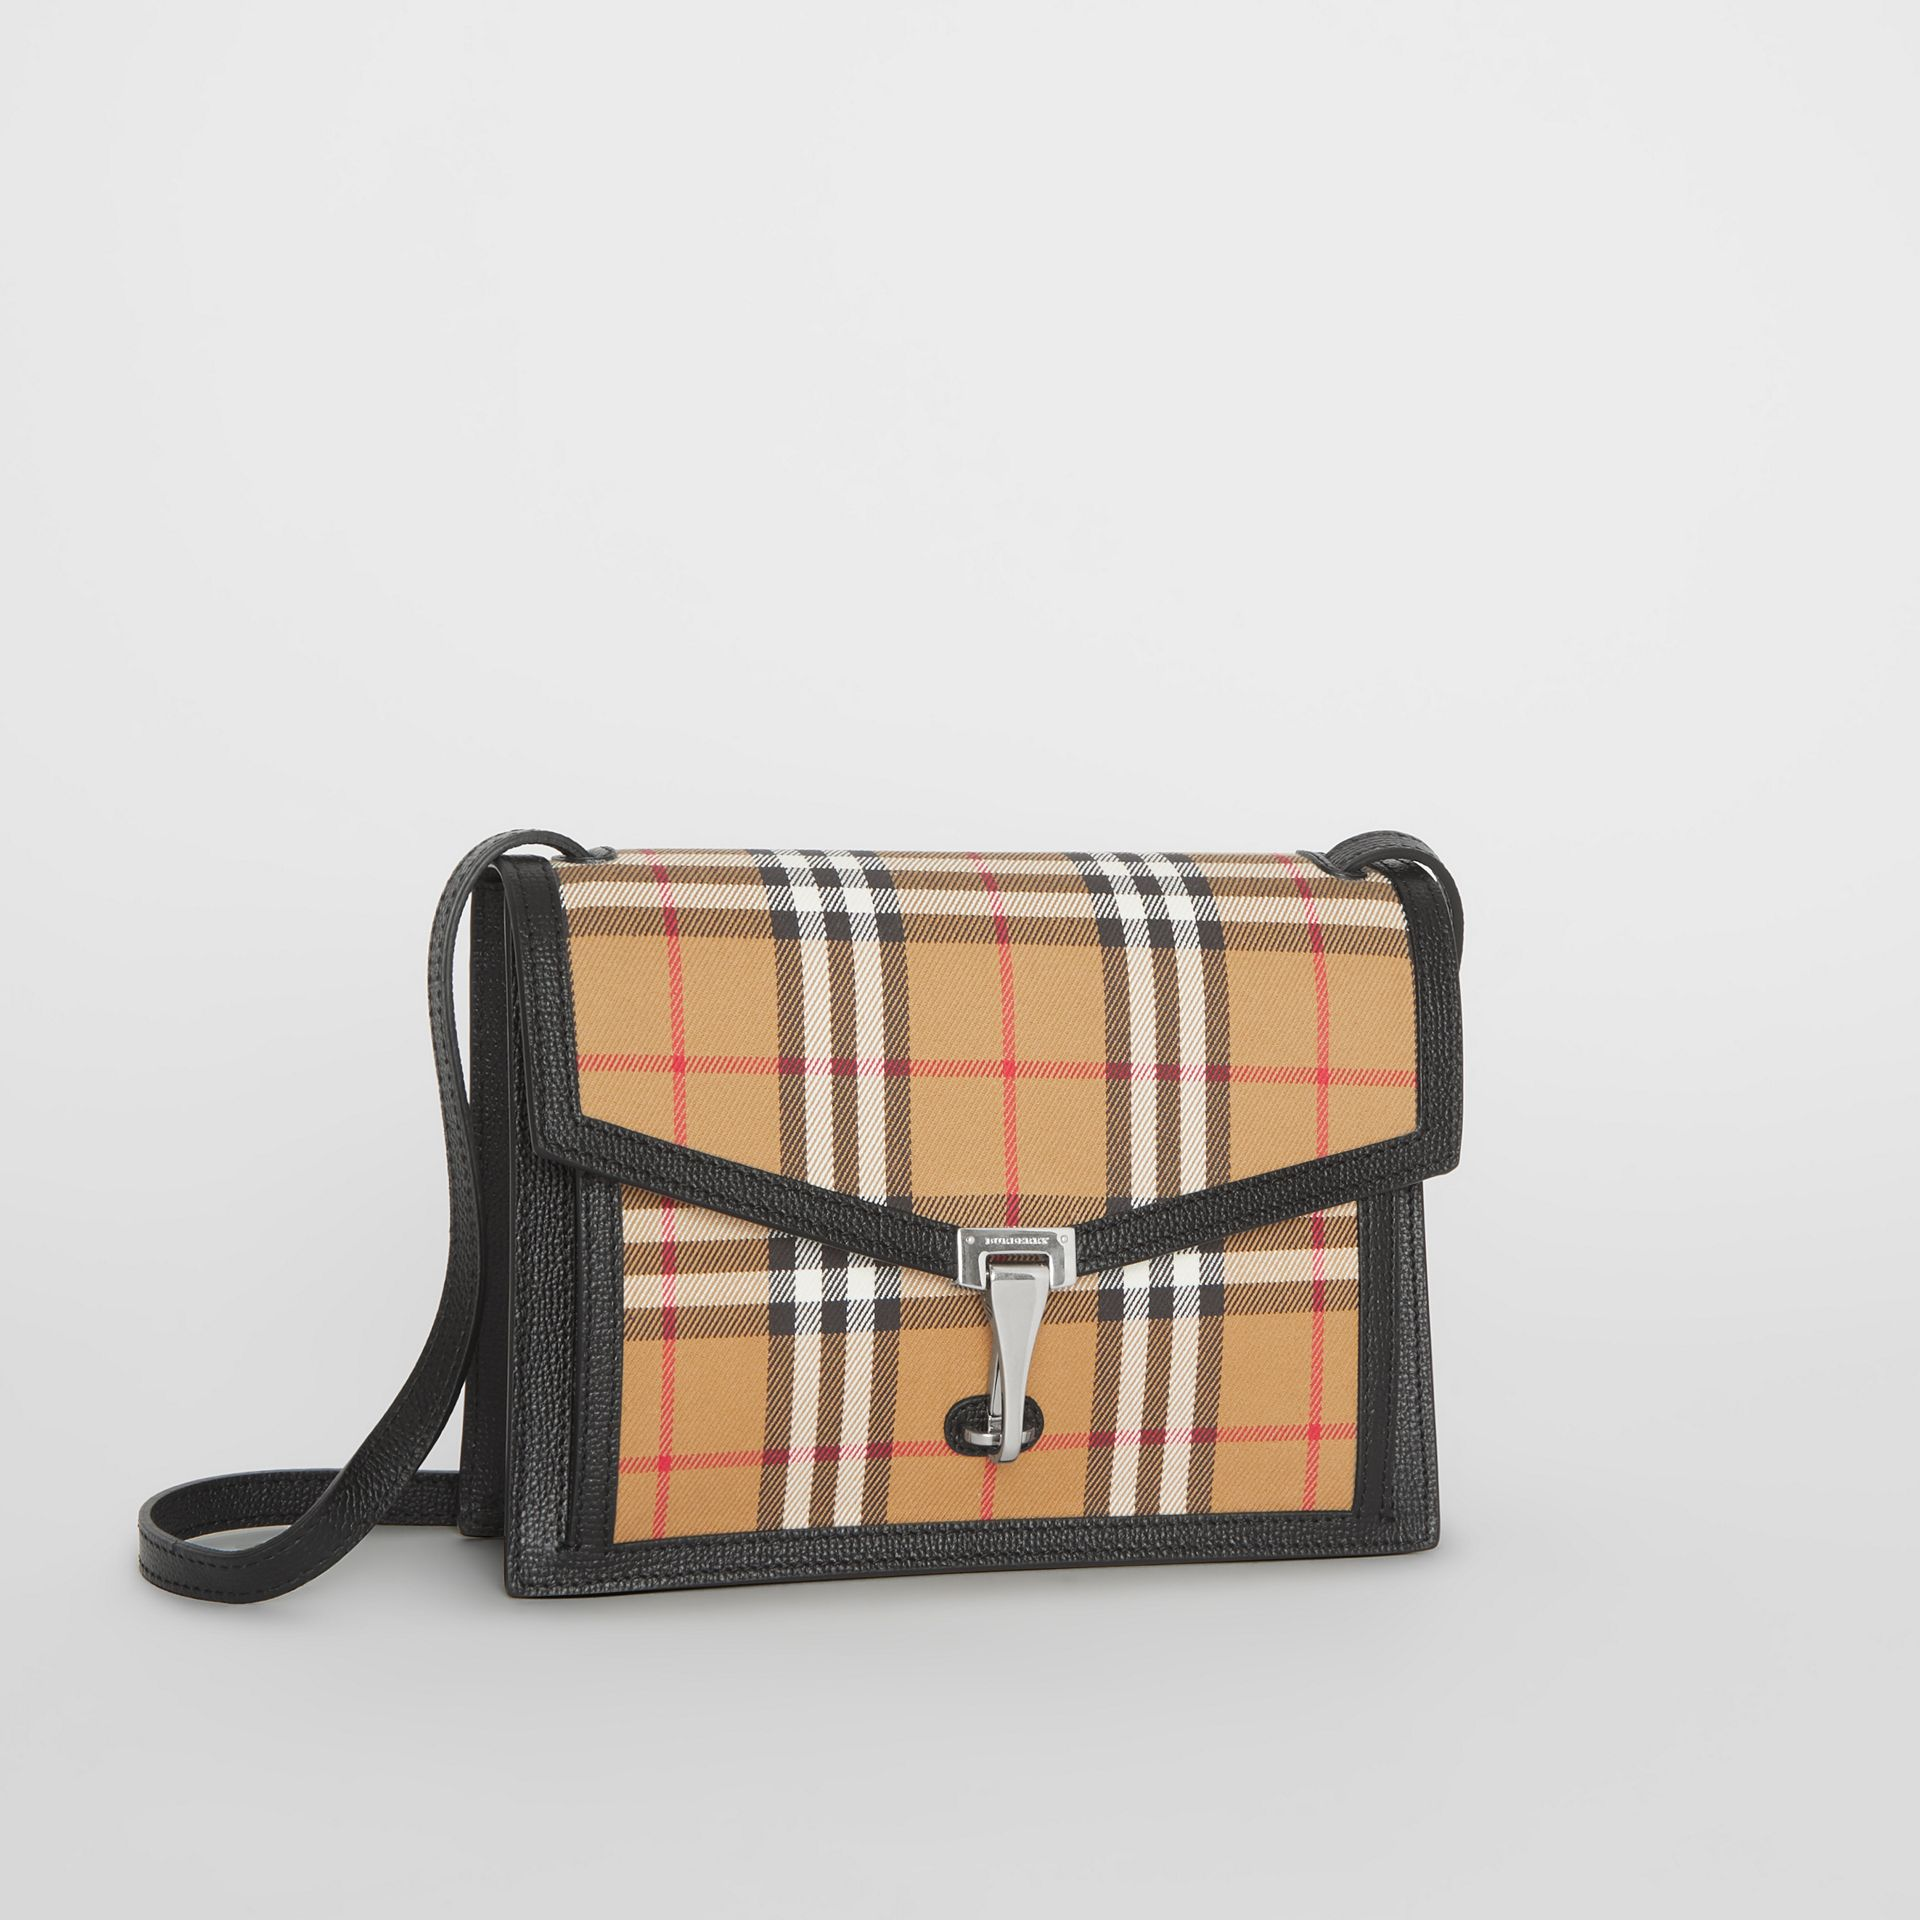 Small Vintage Check and Leather Crossbody Bag in Black - Women | Burberry Hong Kong - gallery image 6